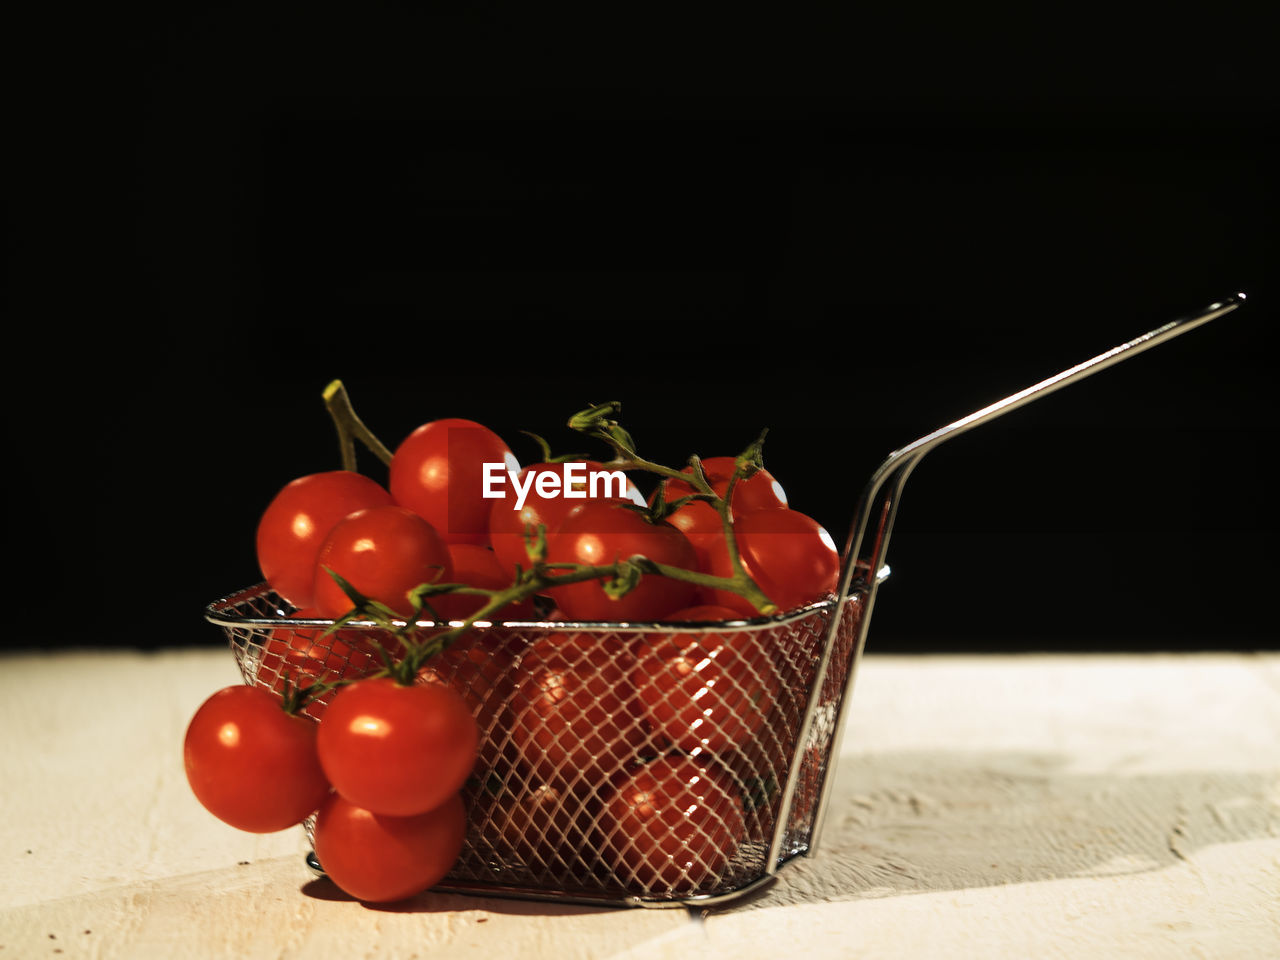 Cheery Tomatoes In Metallic Basket On Table Against Black Background